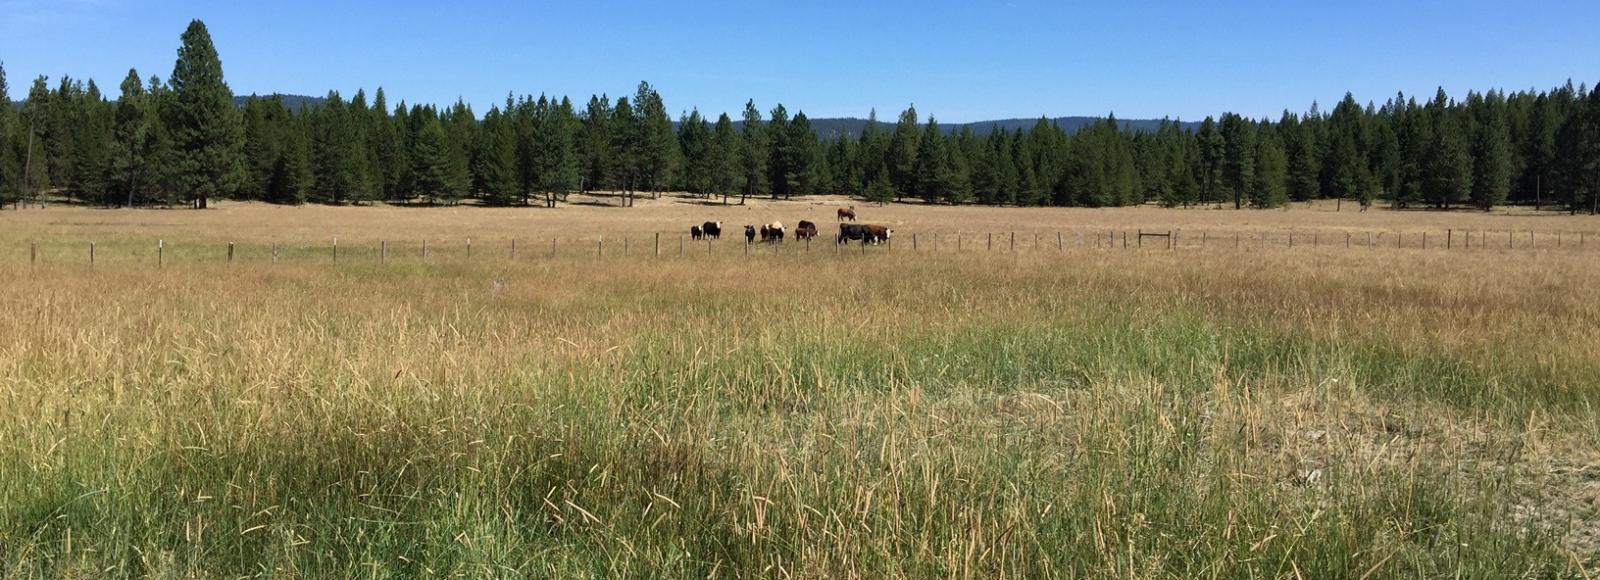 cows in the distance, in a pasture with a forest on the horizon